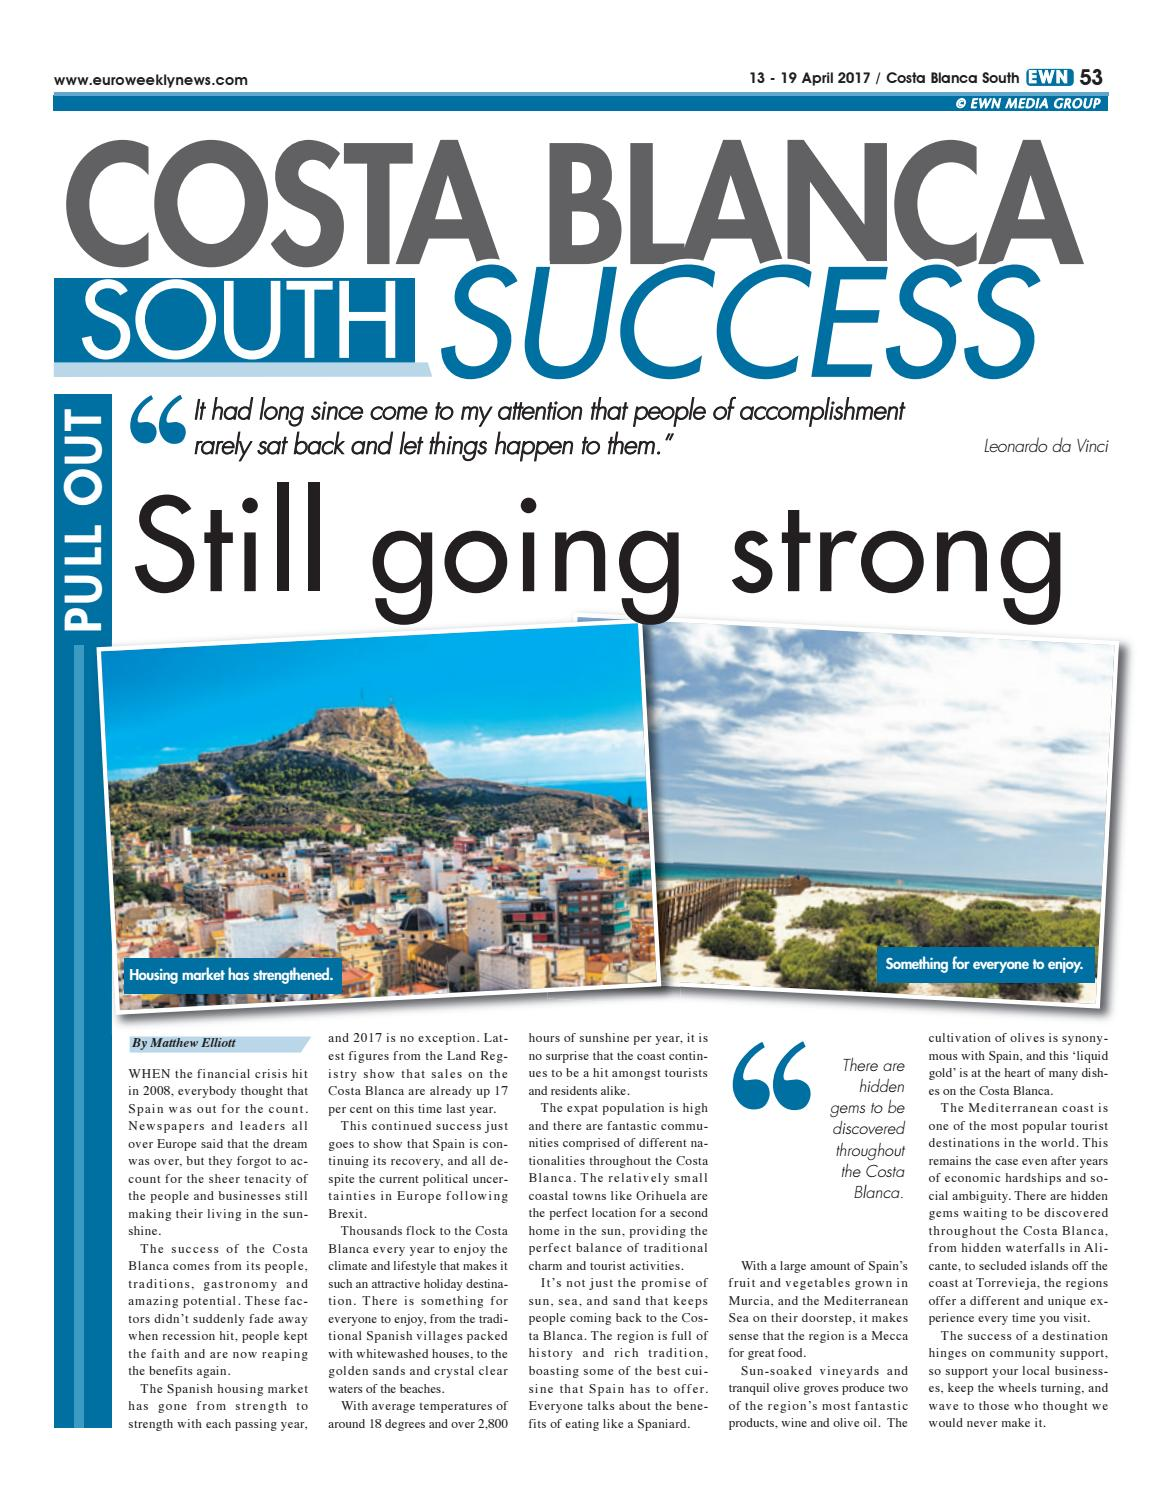 Sofaland Spain Costa Blanca South Success By Euro Weekly News Media S A Issuu